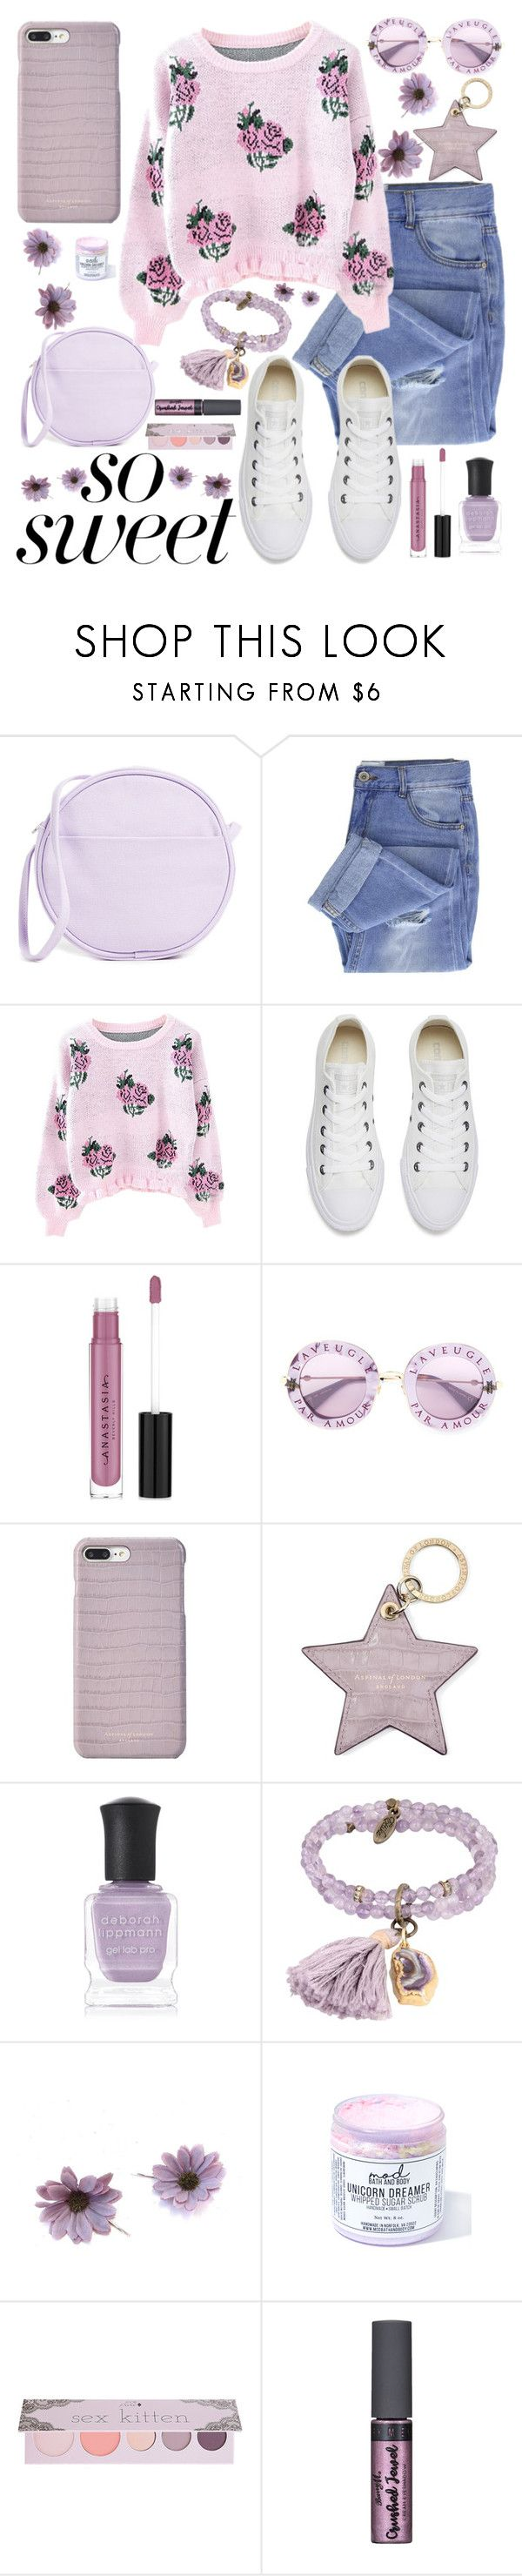 """""""pastel sweater"""" by beingmyselfaf ❤ liked on Polyvore featuring BAGGU, Taya, Converse, Anastasia Beverly Hills, Gucci, Aspinal of London, Deborah Lippmann, Ettika, Mod Bath and Body and 100% Pure"""